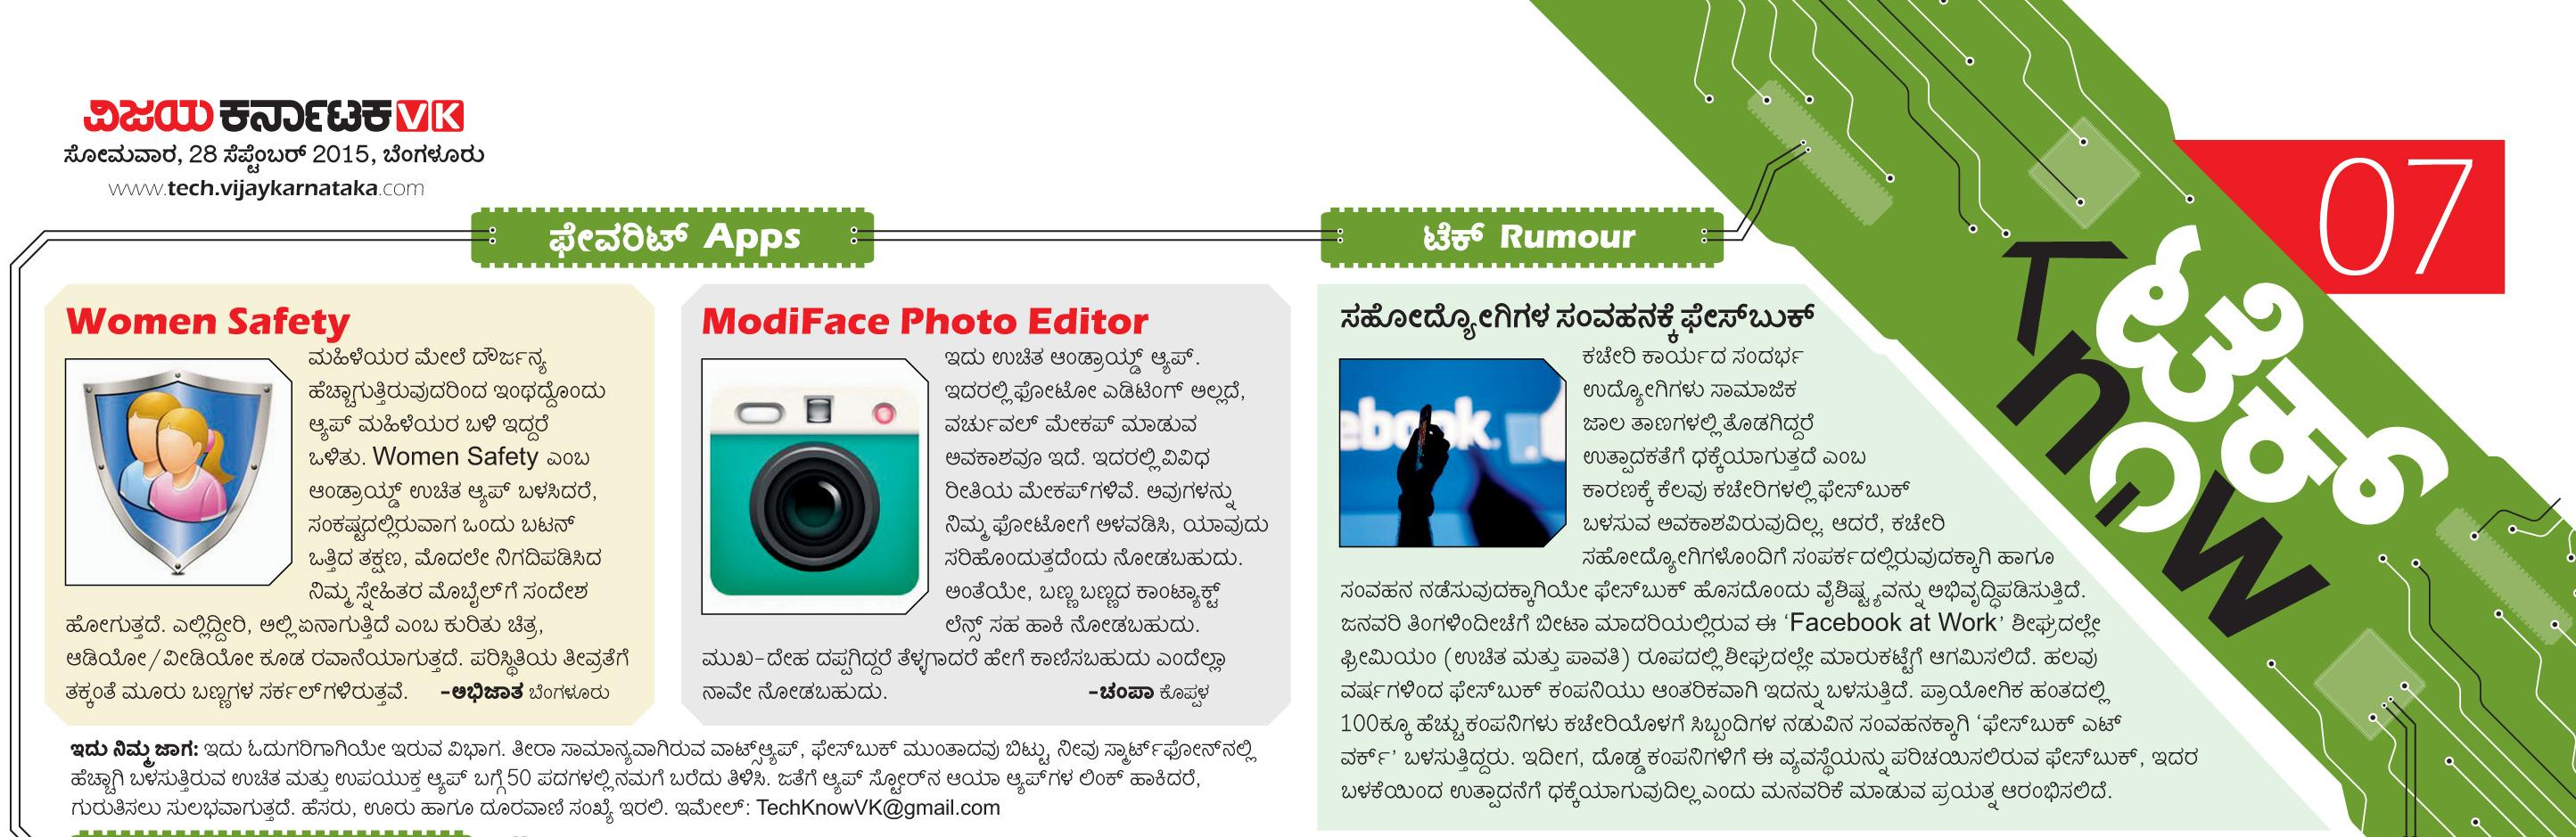 Article on Women Safety in Vijaya Karnataka